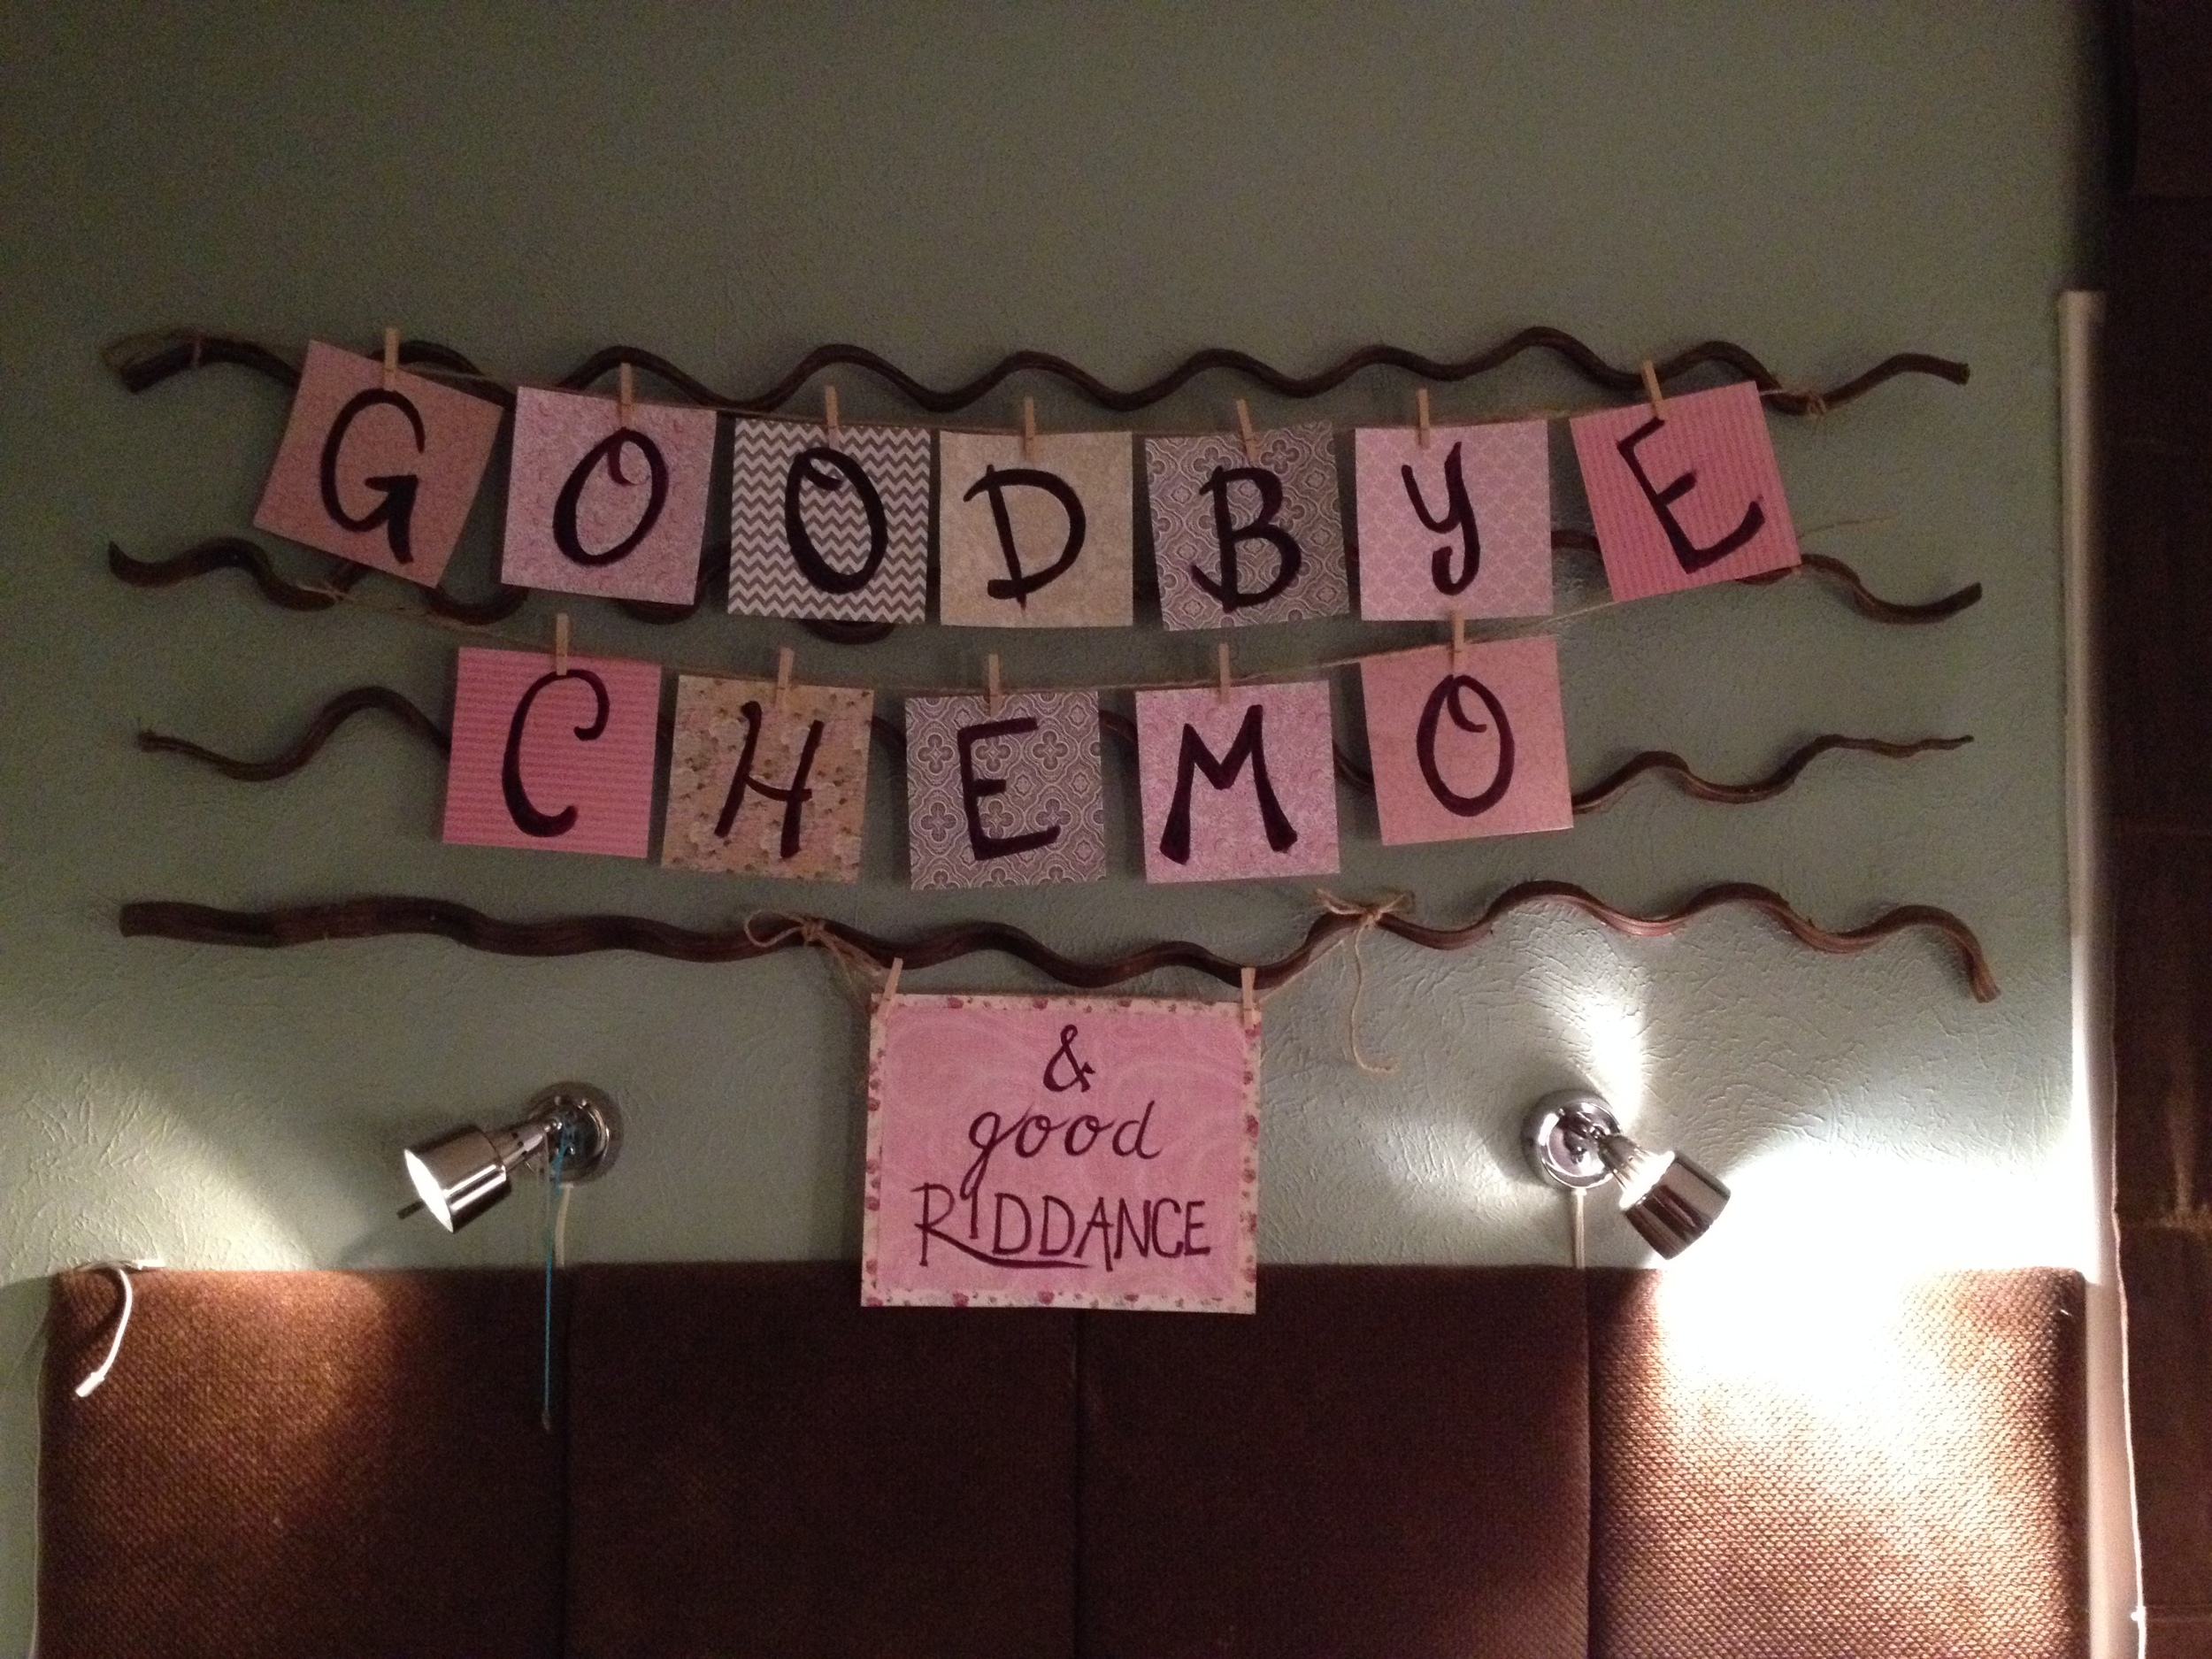 LIV'S REMINDER HANGS OVER THE BED WHERE LAURA SPENDS HER FINAL CHEMO CRUD WEEK